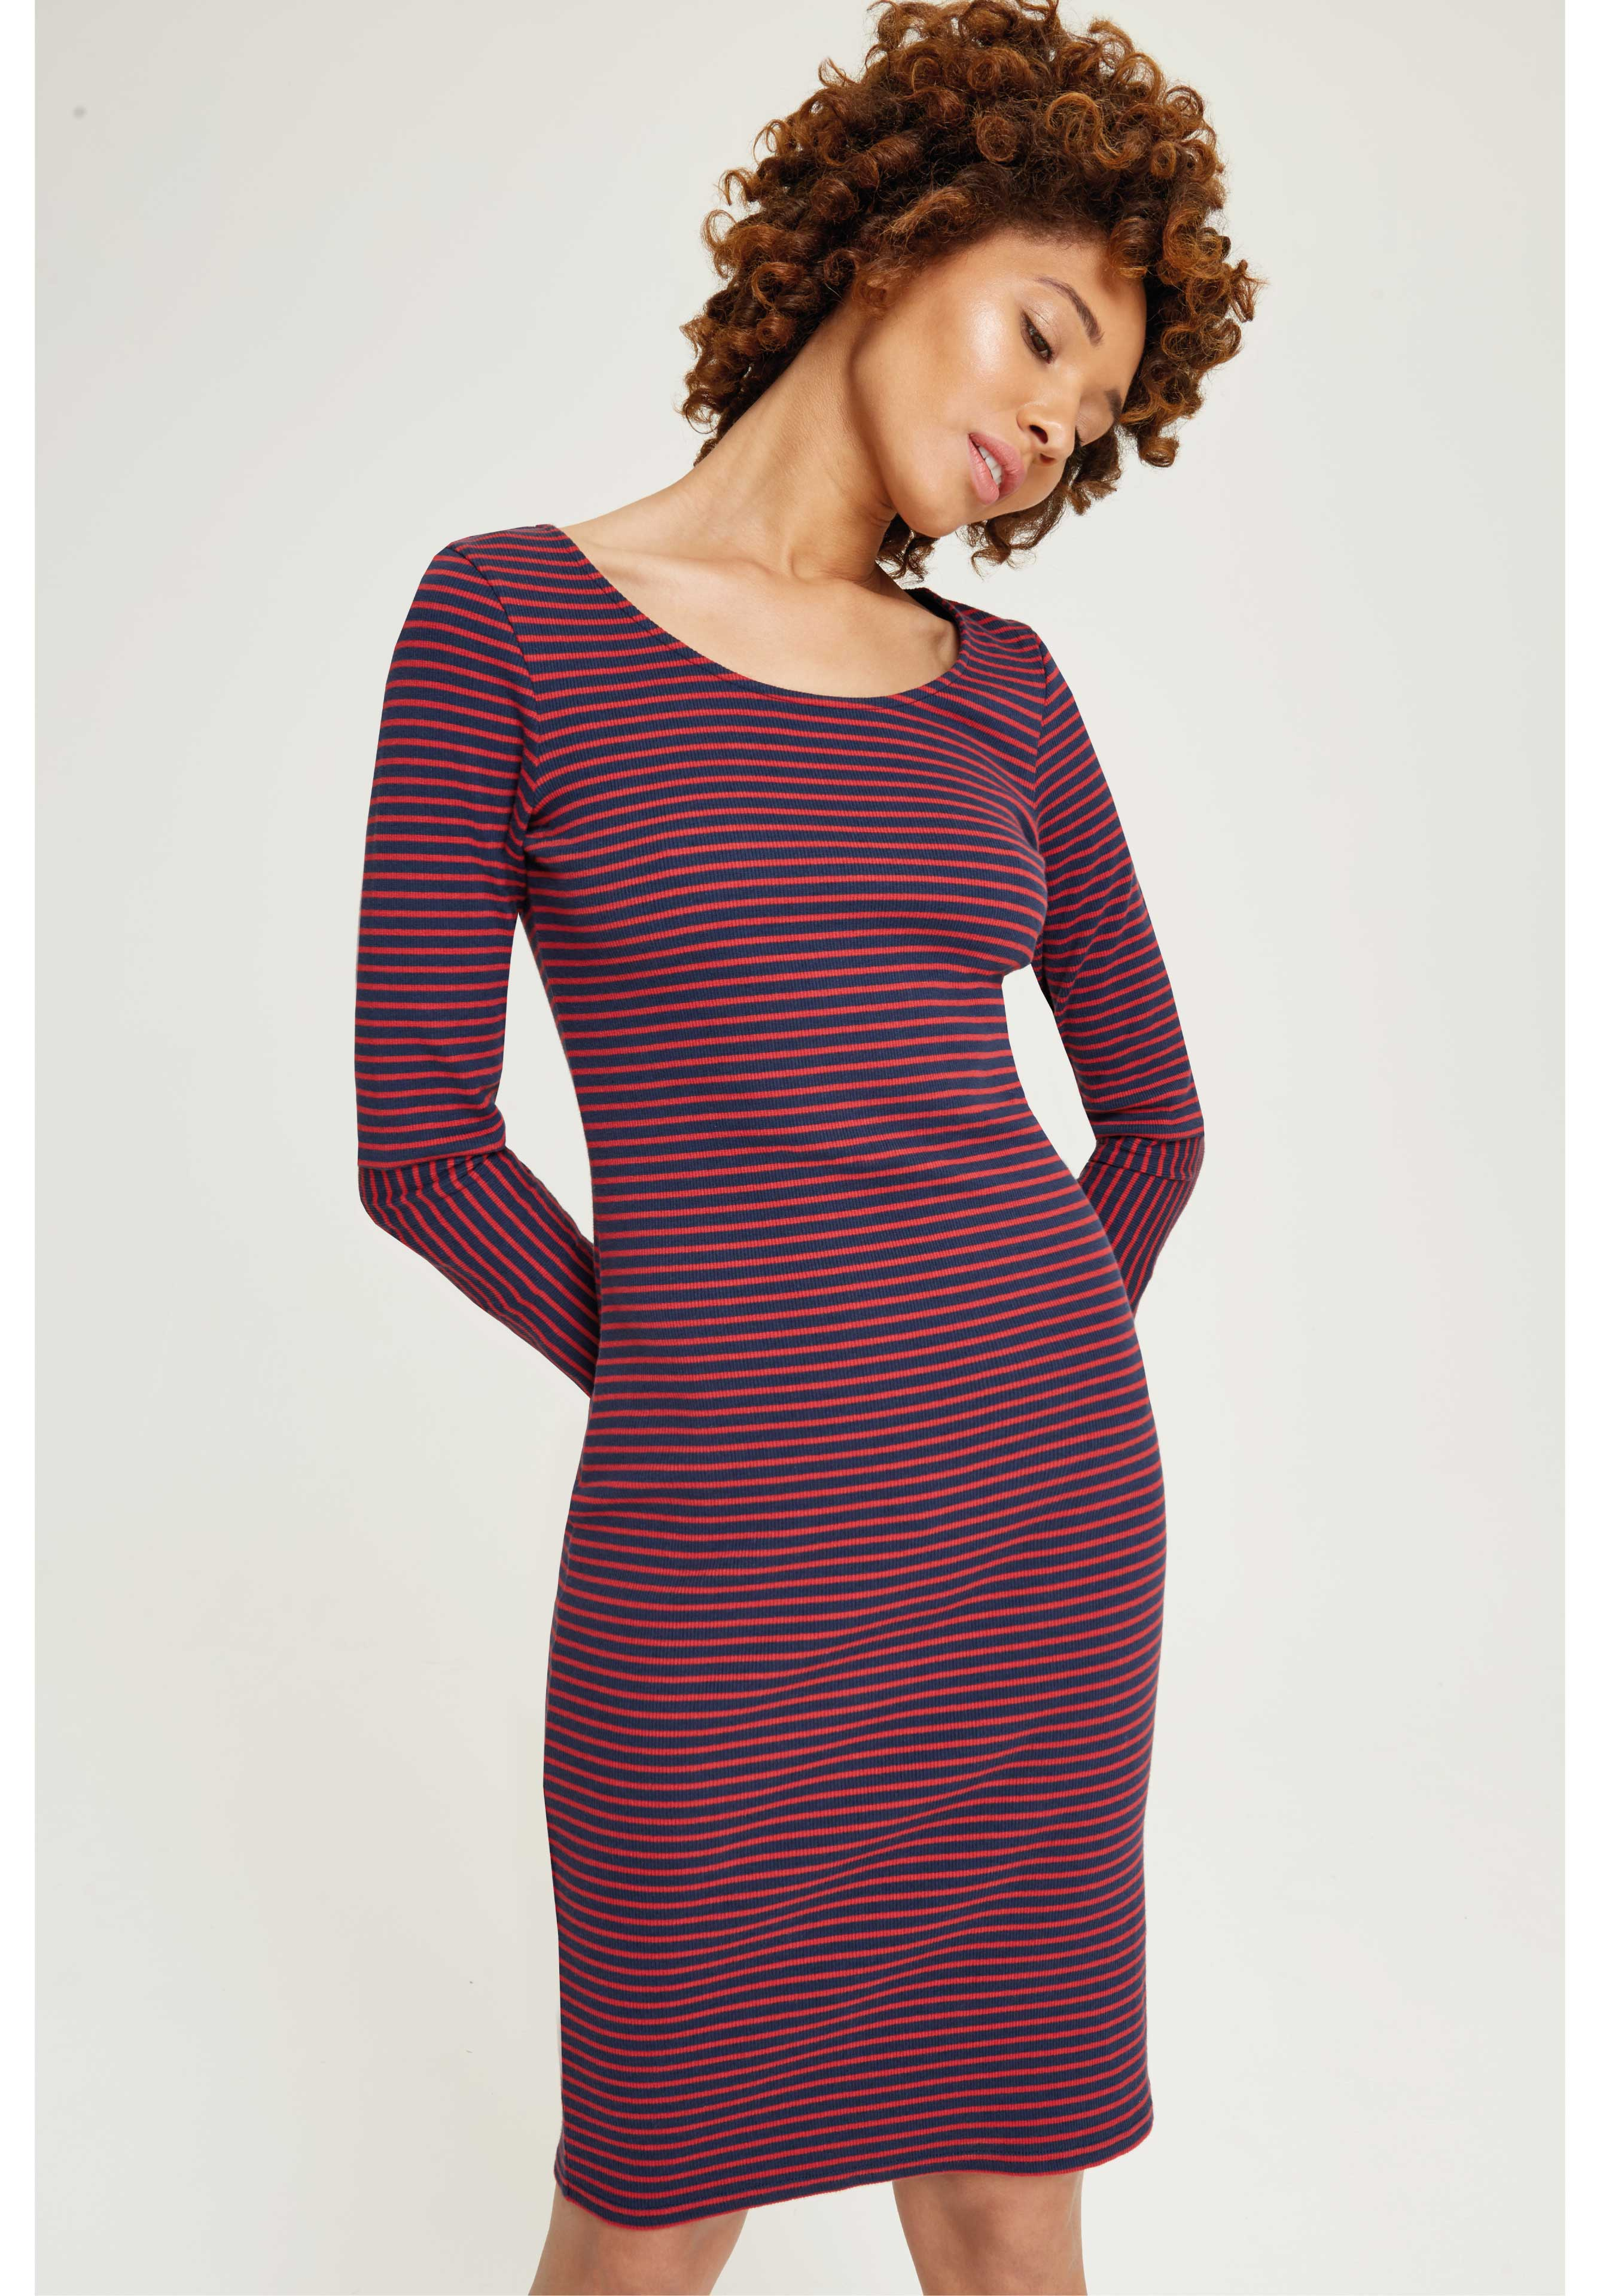 Inez Stripe Dress Navy and Red